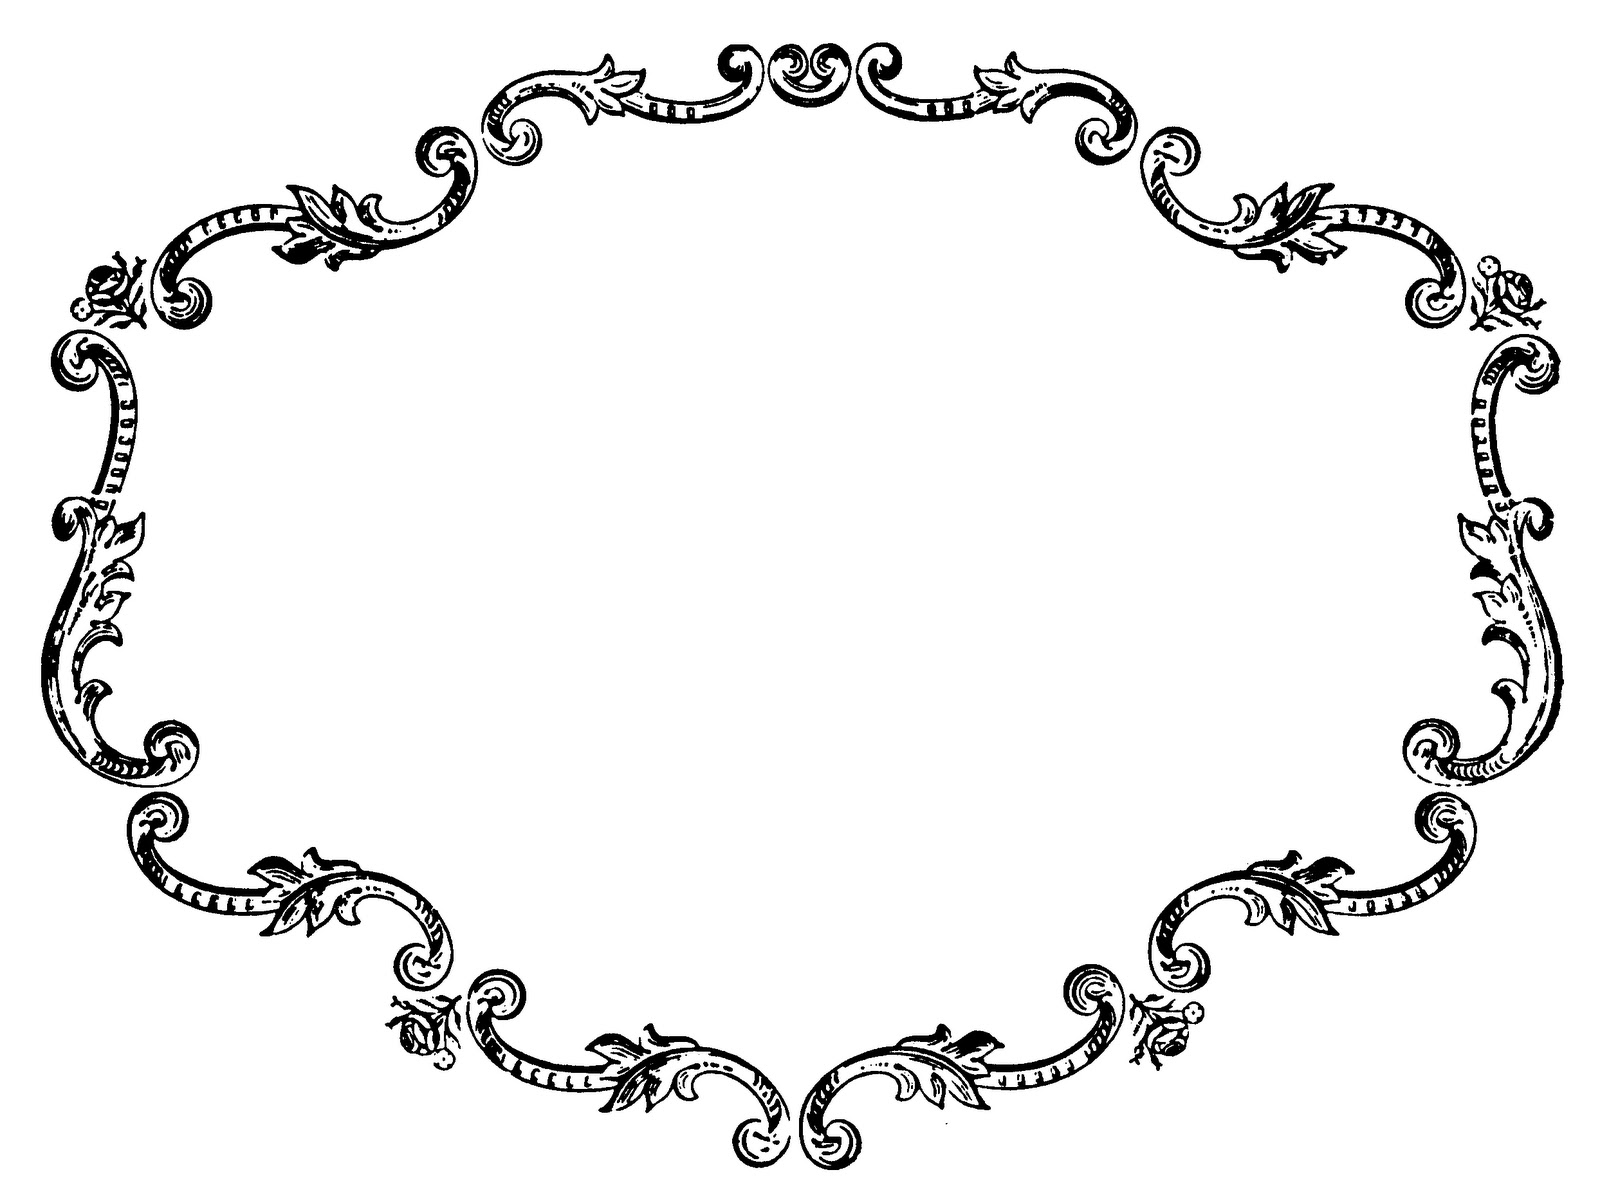 Cliparts border image transparent library Borders Clipart & Borders Clip Art Images - ClipartALL.com image transparent library